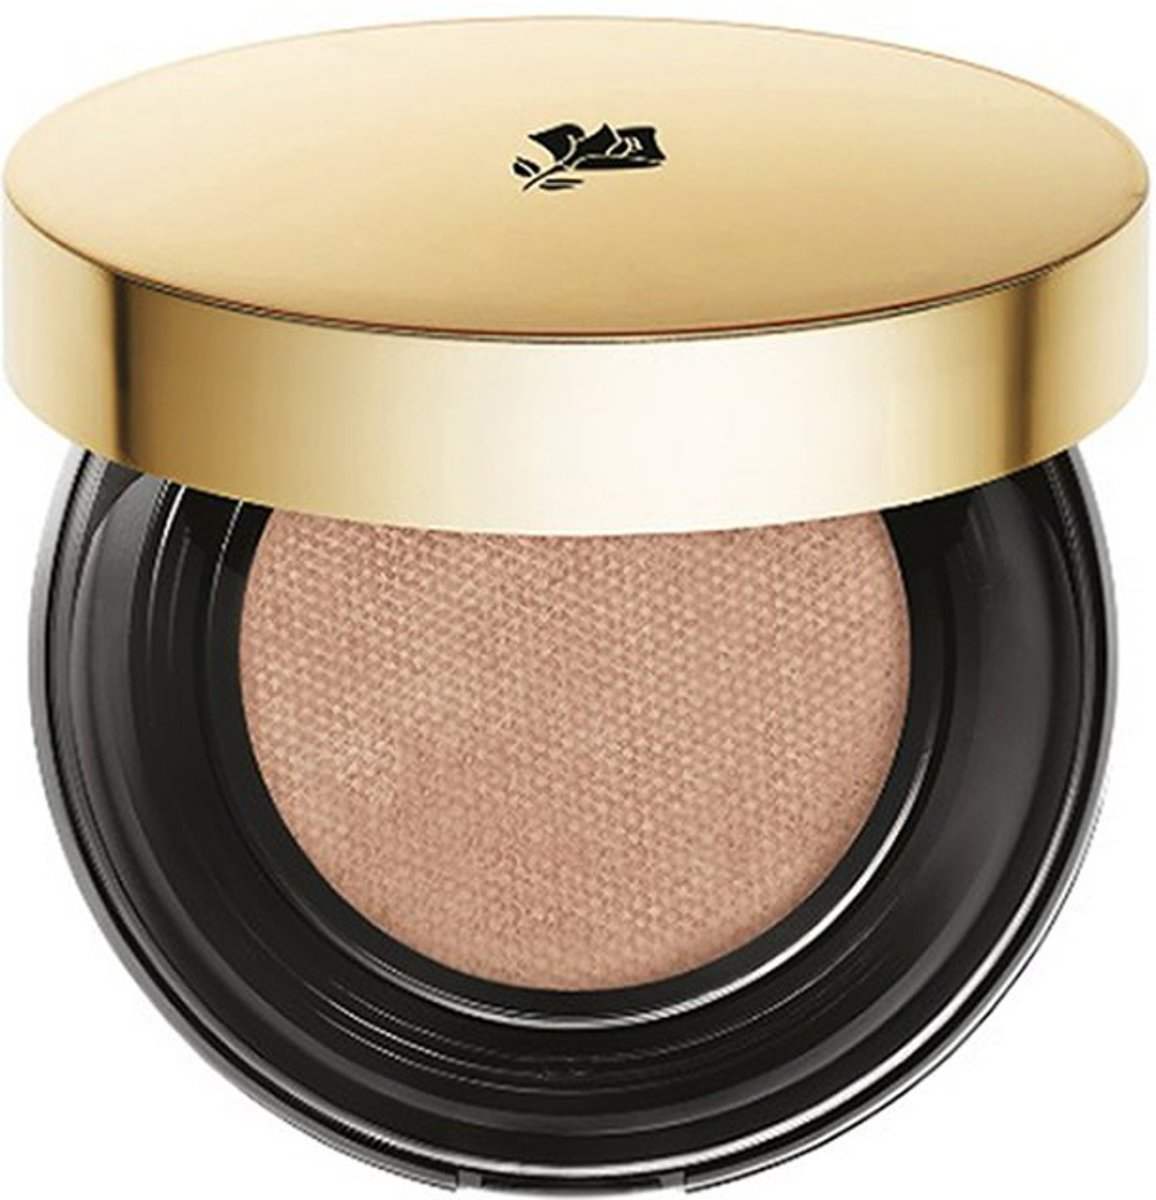 Lancôme Teint Idole Ultra Cushion Foundation 13 gr - 04 - Beige Miel